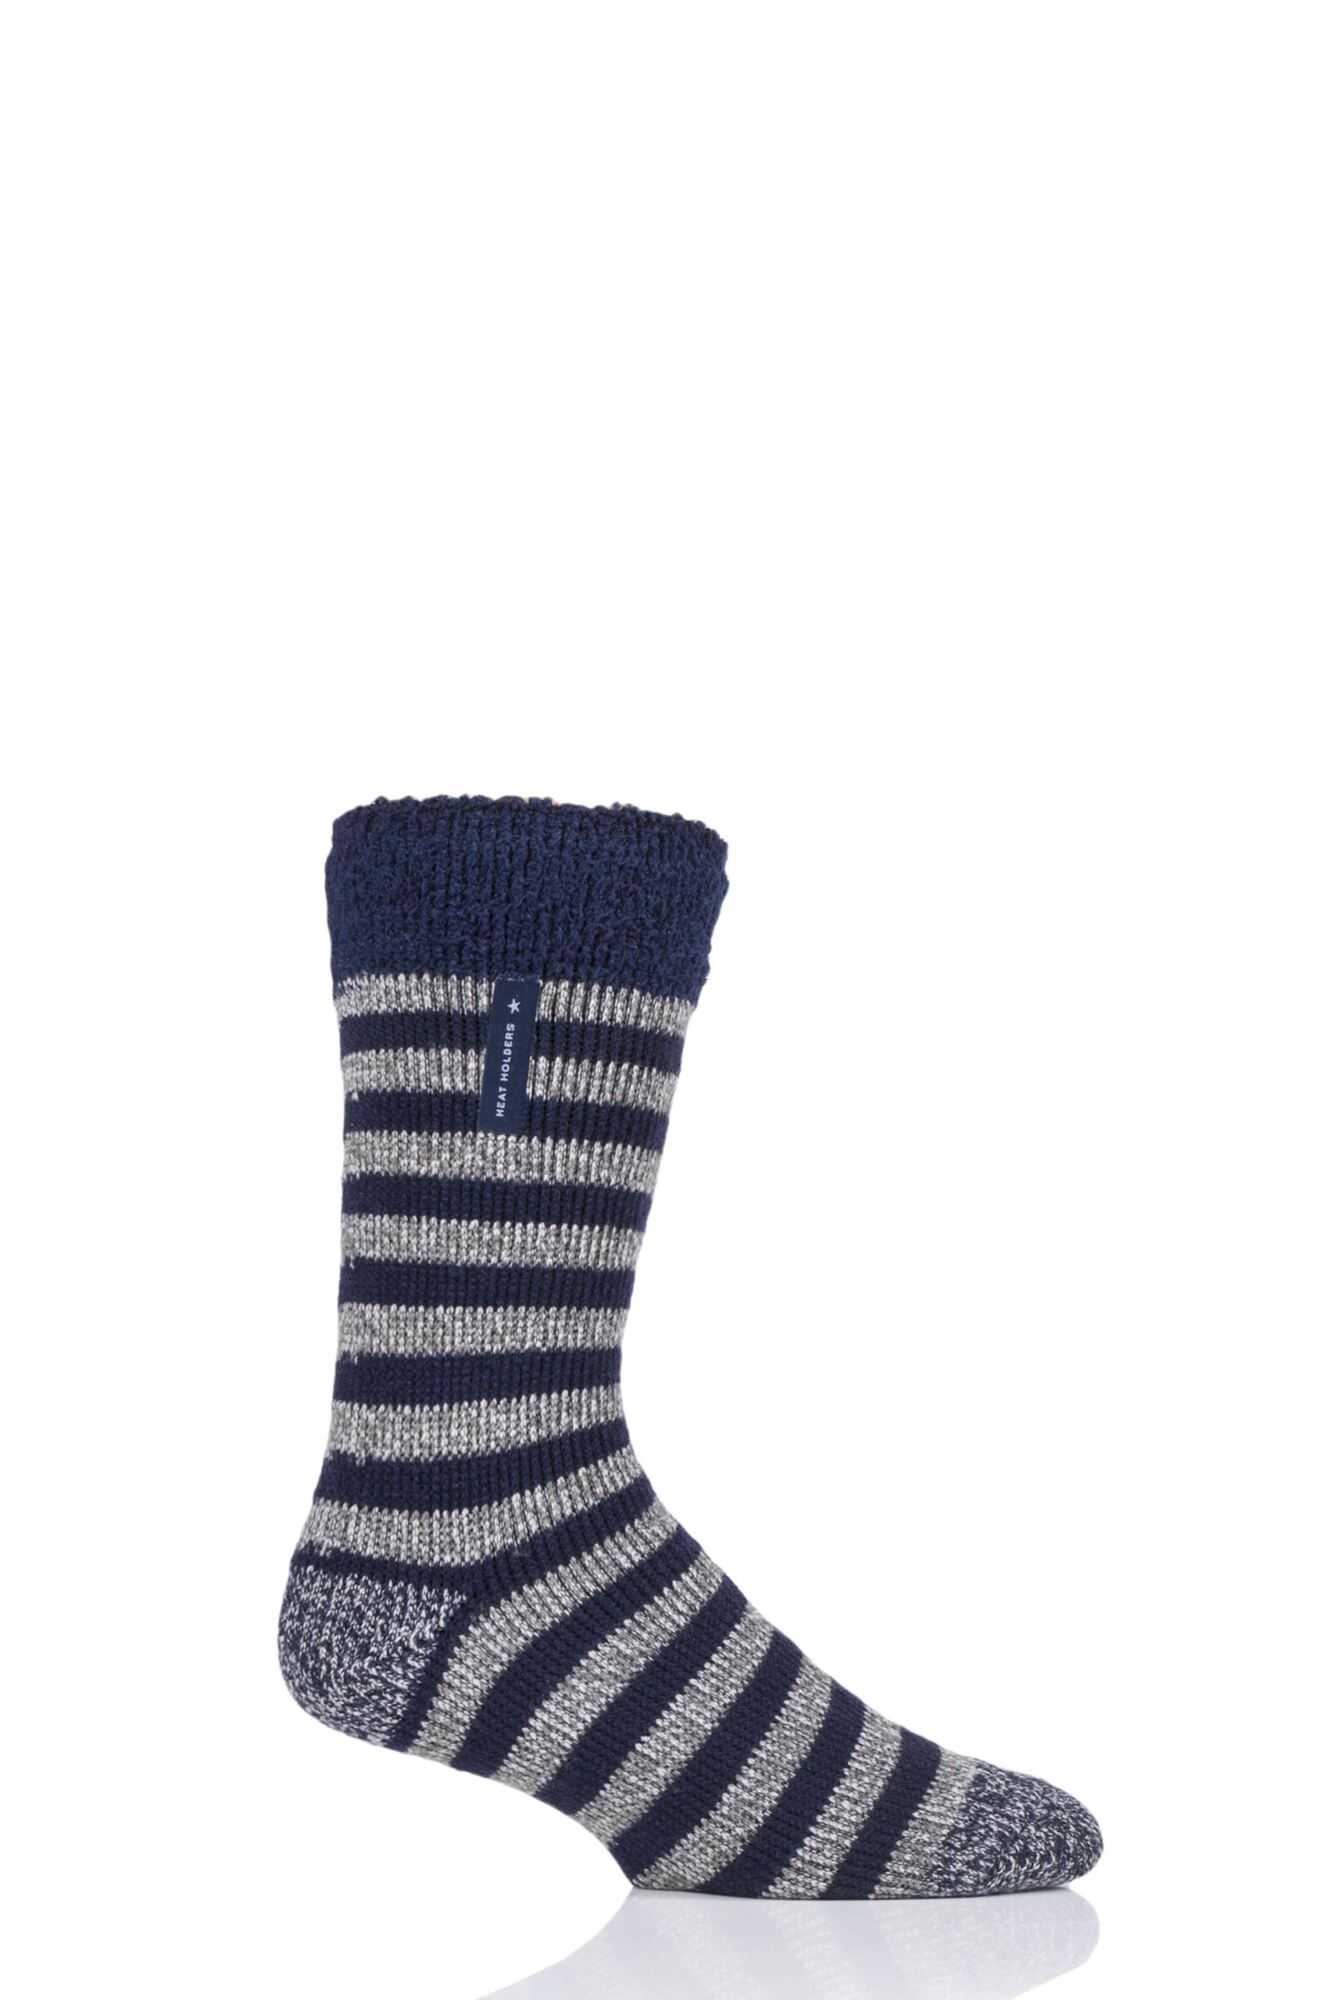 1 Pair Lumi Sleep Socks Men's - Heat Holders